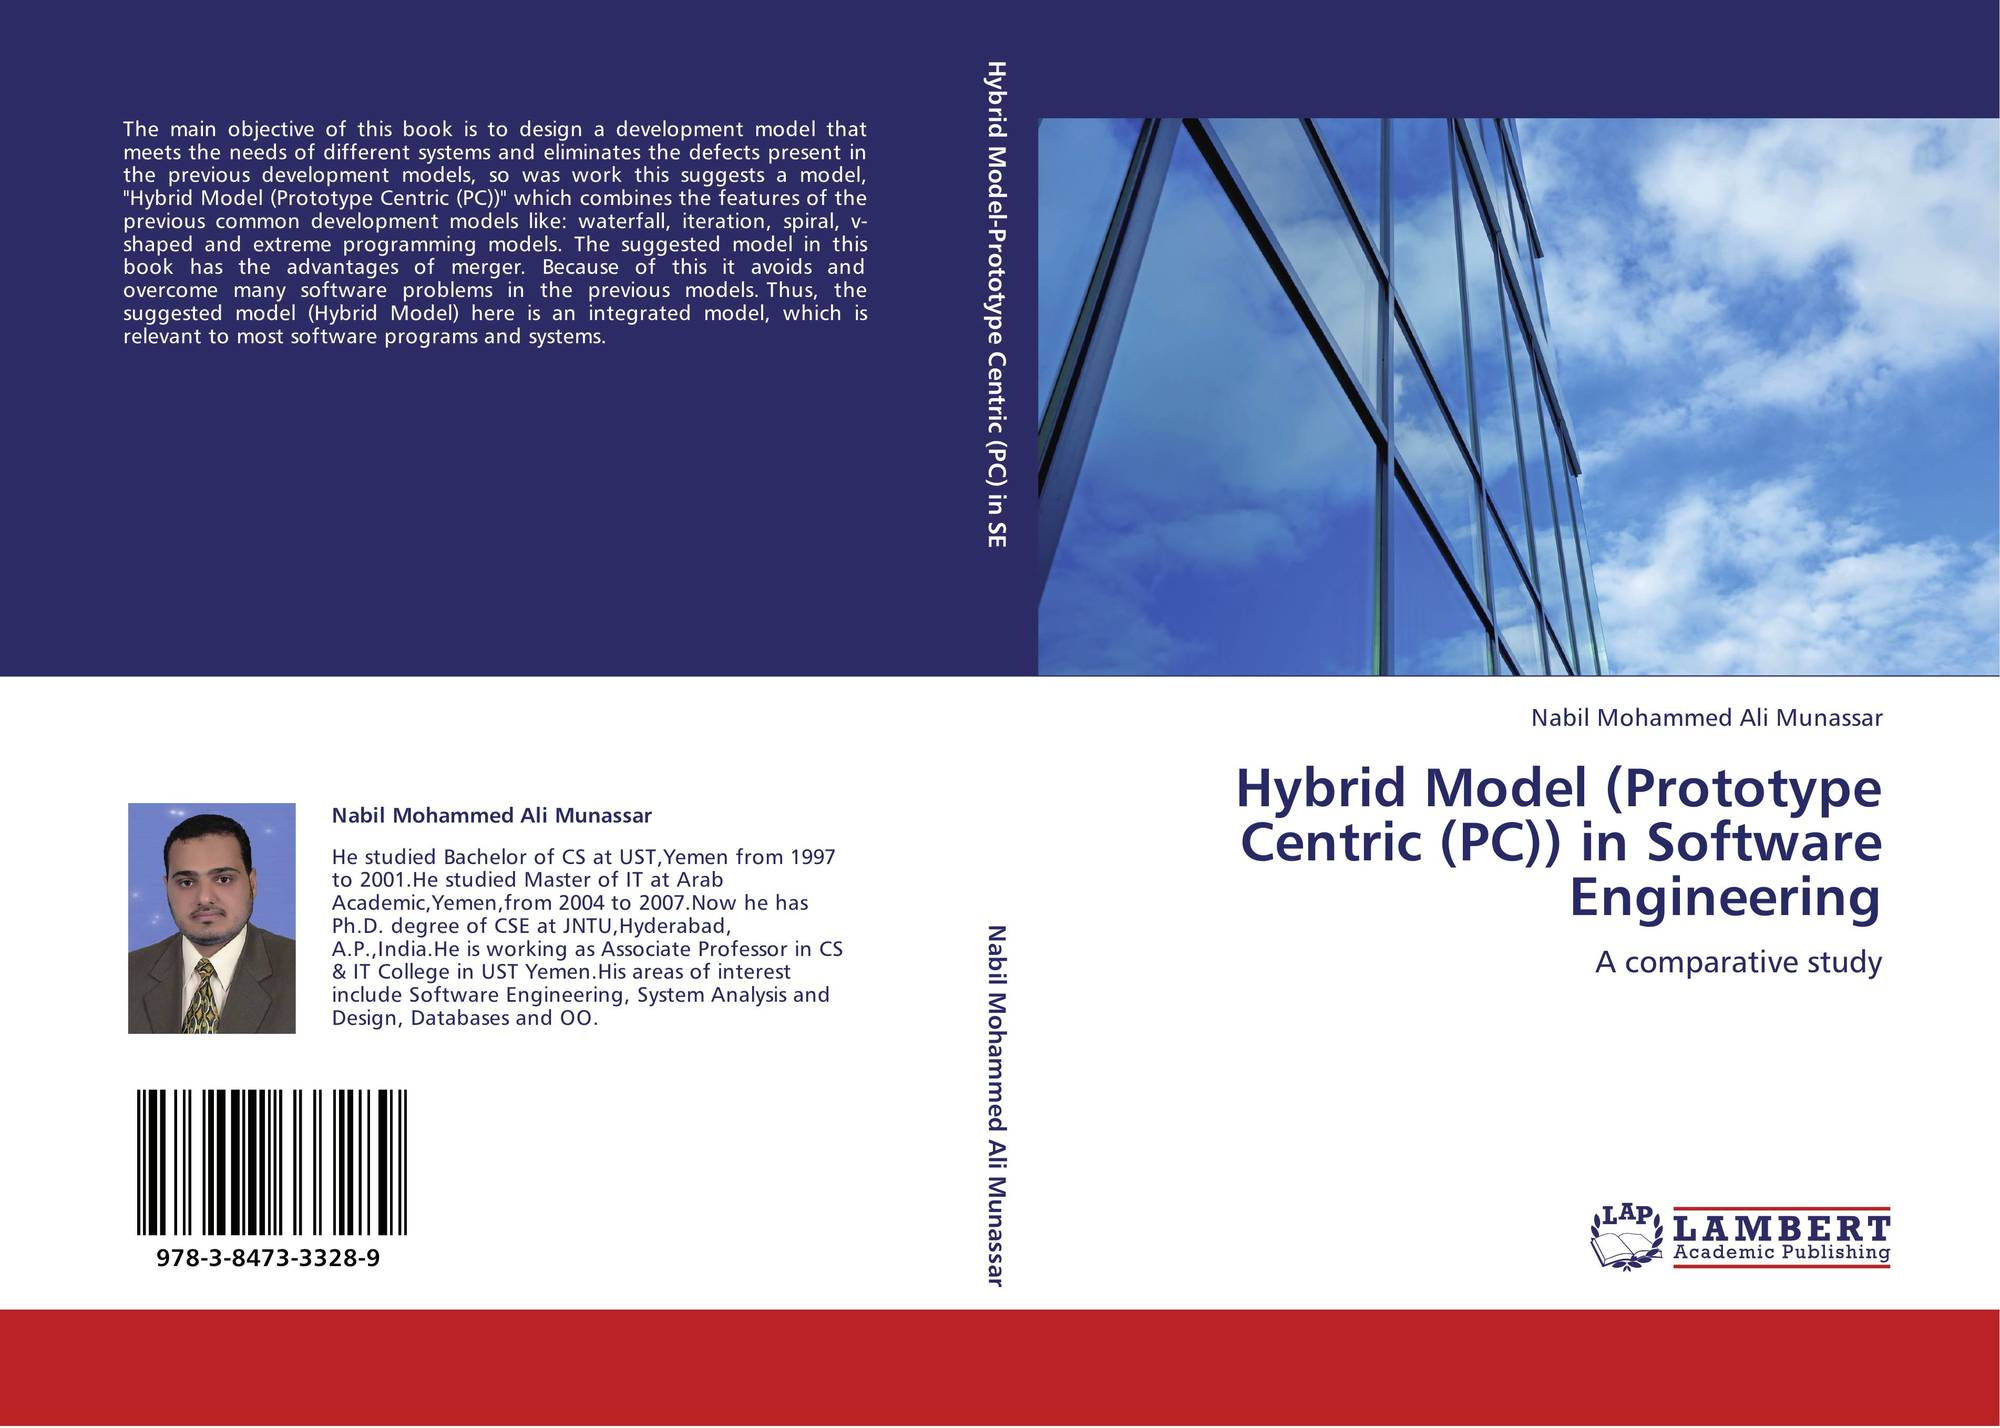 Hybrid Model Prototype Centric Pc In Software Engineering 978 3 8473 3328 9 3847333283 9783847333289 By Nabil Mohammed Ali Munassar